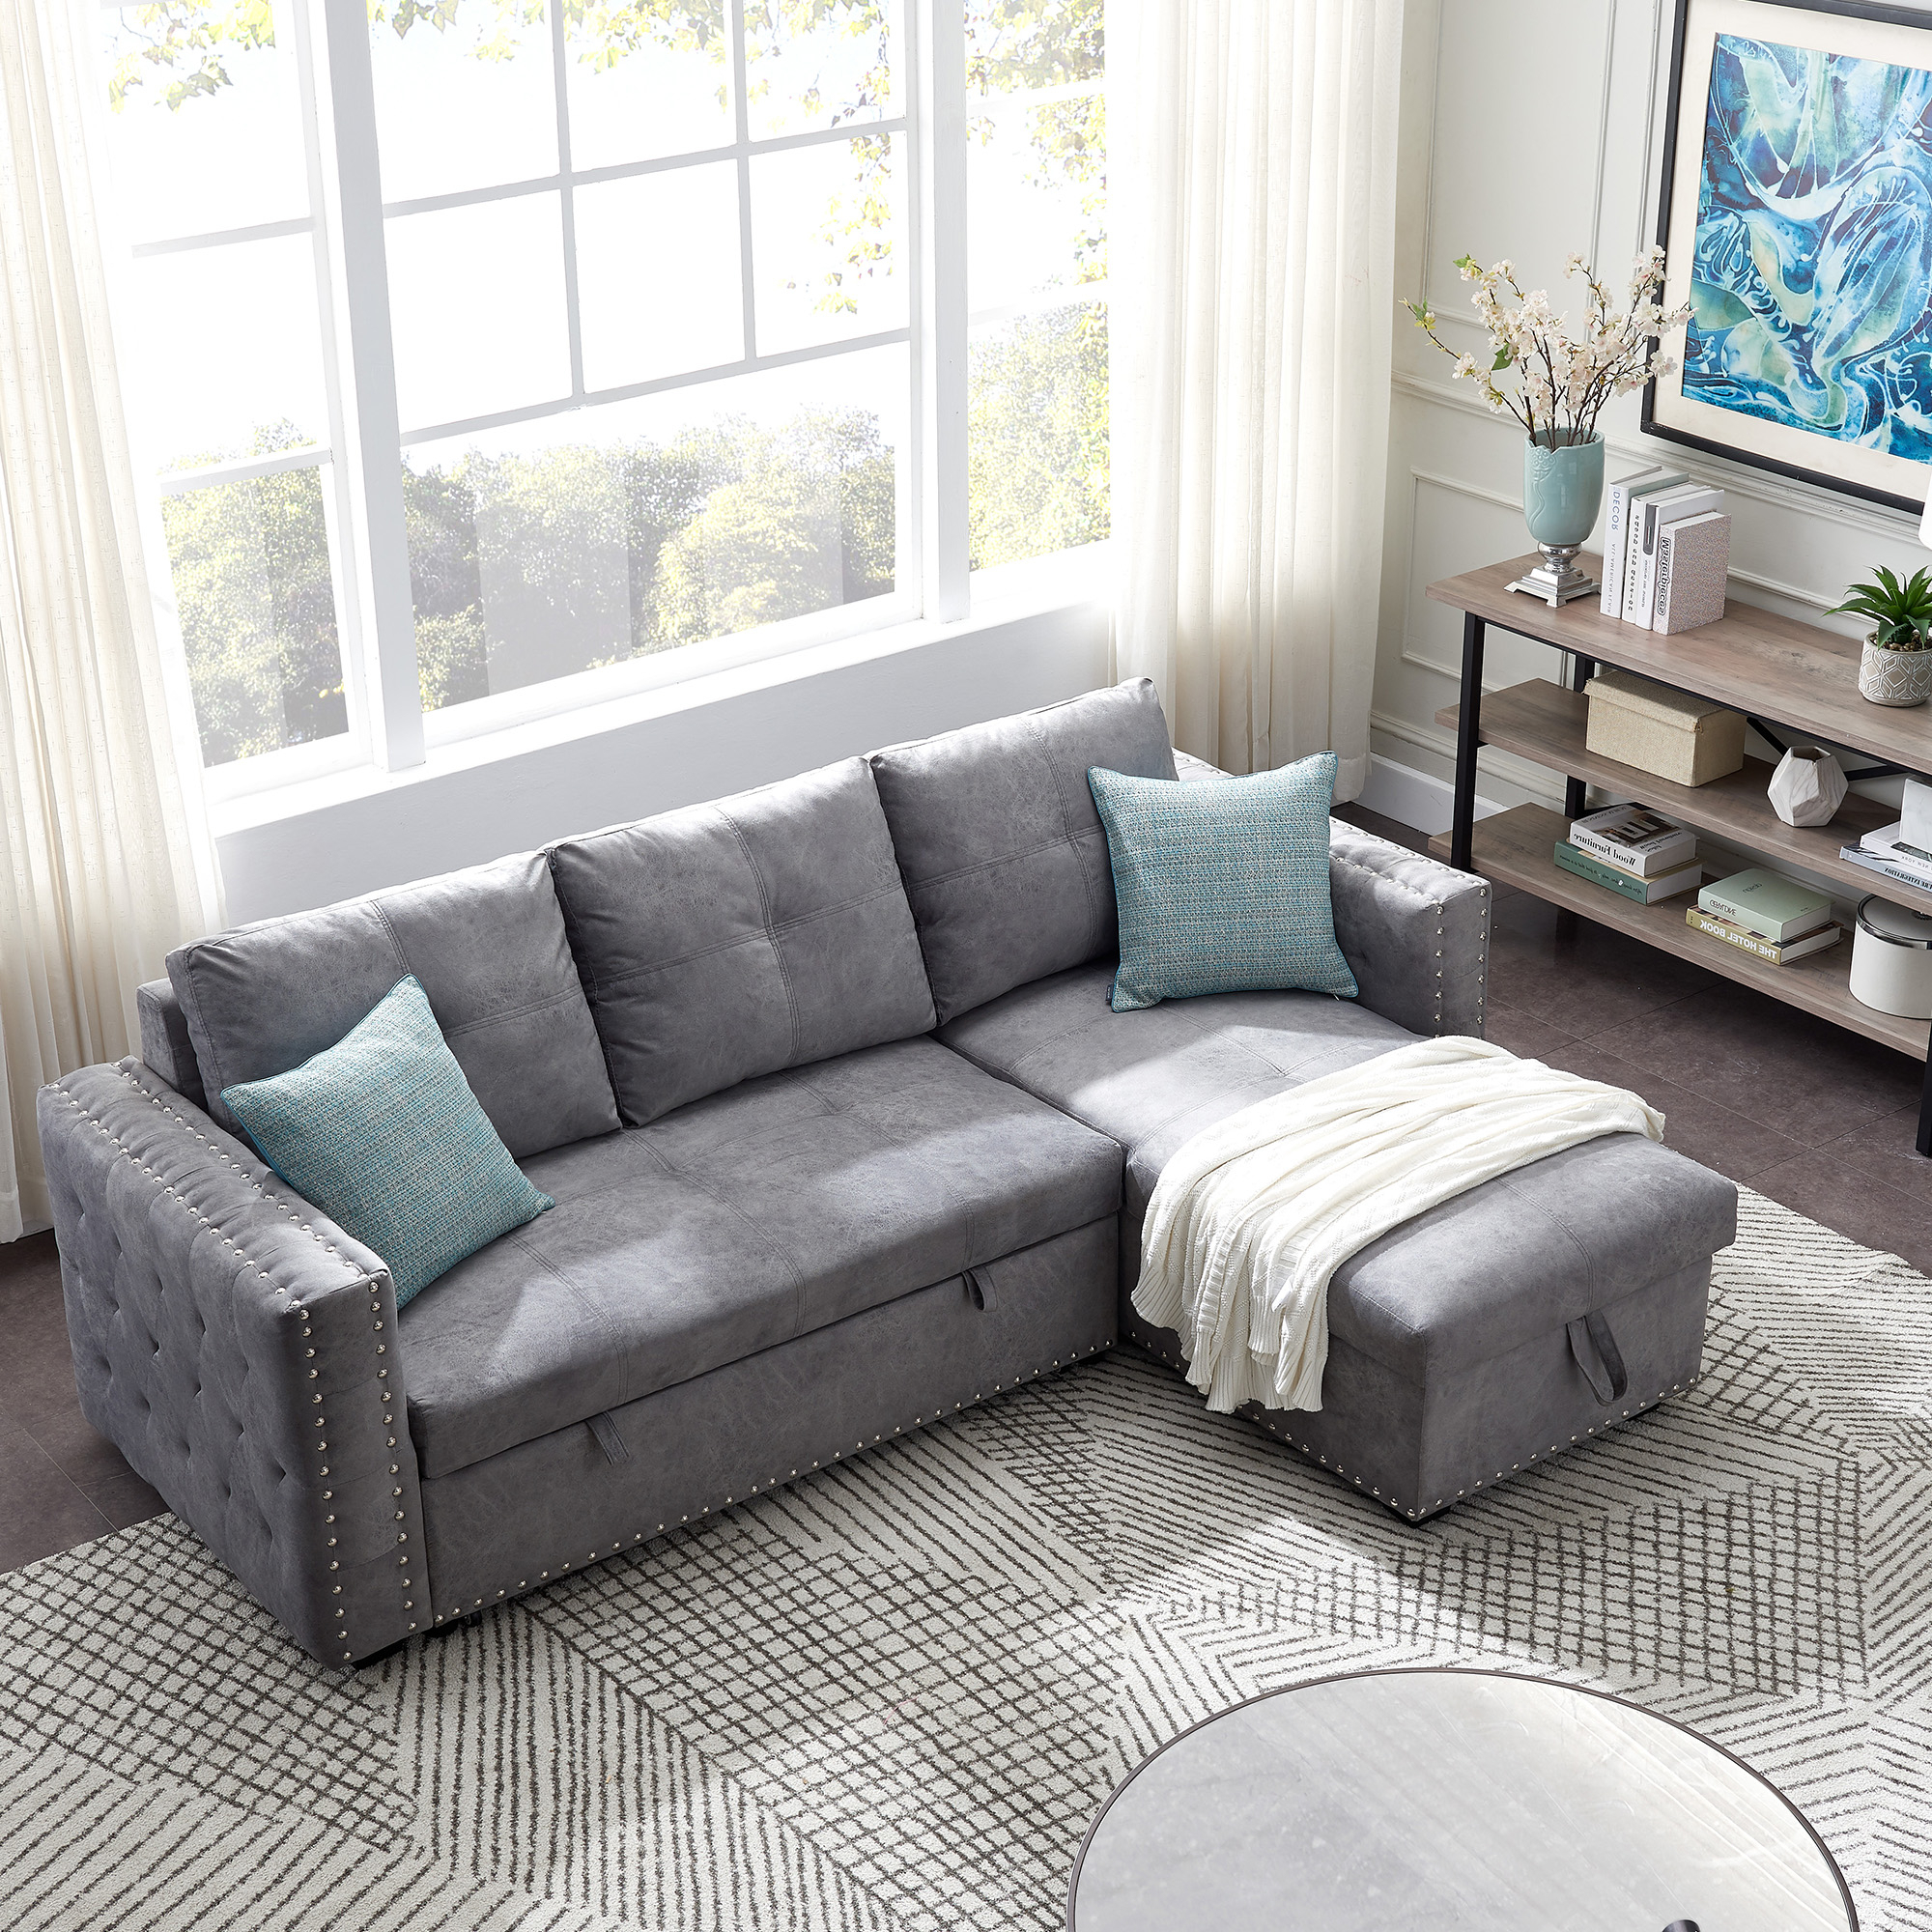 Segmart Sectional Sofas, Modern Upholstered Sofa With Inside Well Known Live It Cozy Sectional Sofa Beds With Storage (View 1 of 20)